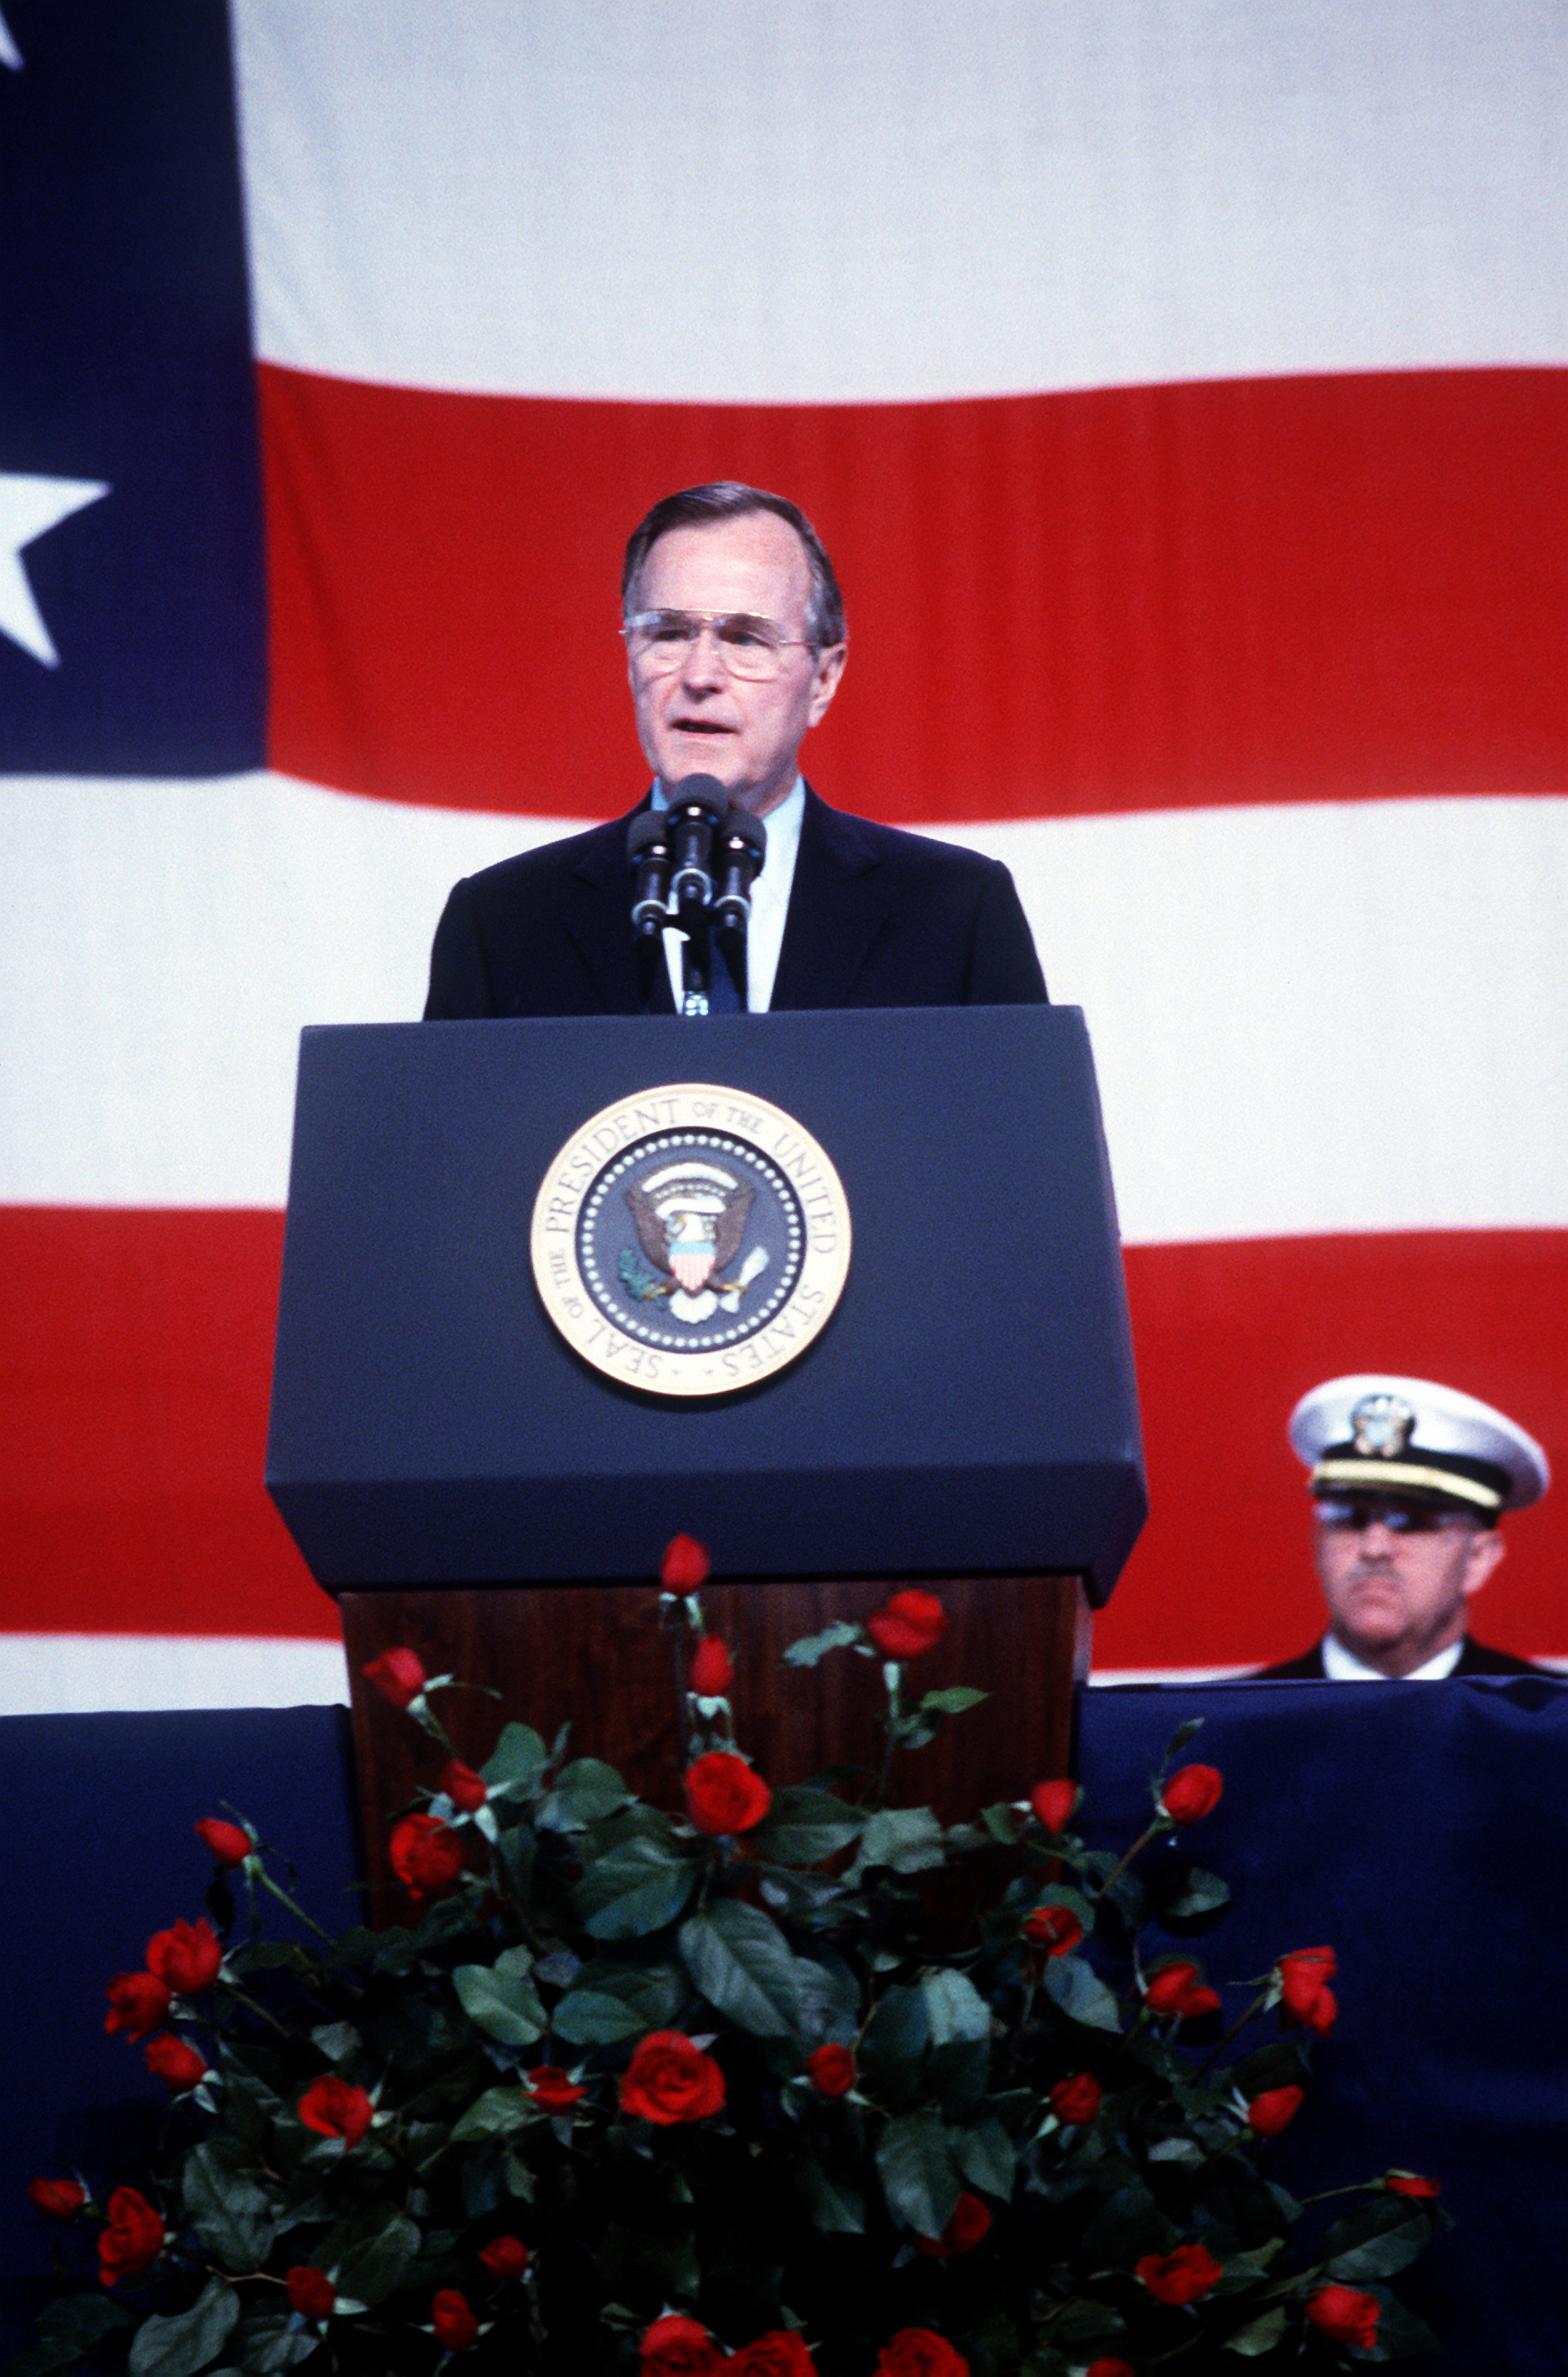 President George H.W. Bush speaks during a memorial service for 47 crew members killed in an explosion aboard the battleship USS Iowa (BB-61). The explosion occurred in the No. 2 16-inch gun turret as the Iowa was conducting routine gunnery exercises approximately 300 miles northeast of Puerto Rico on April 19th.